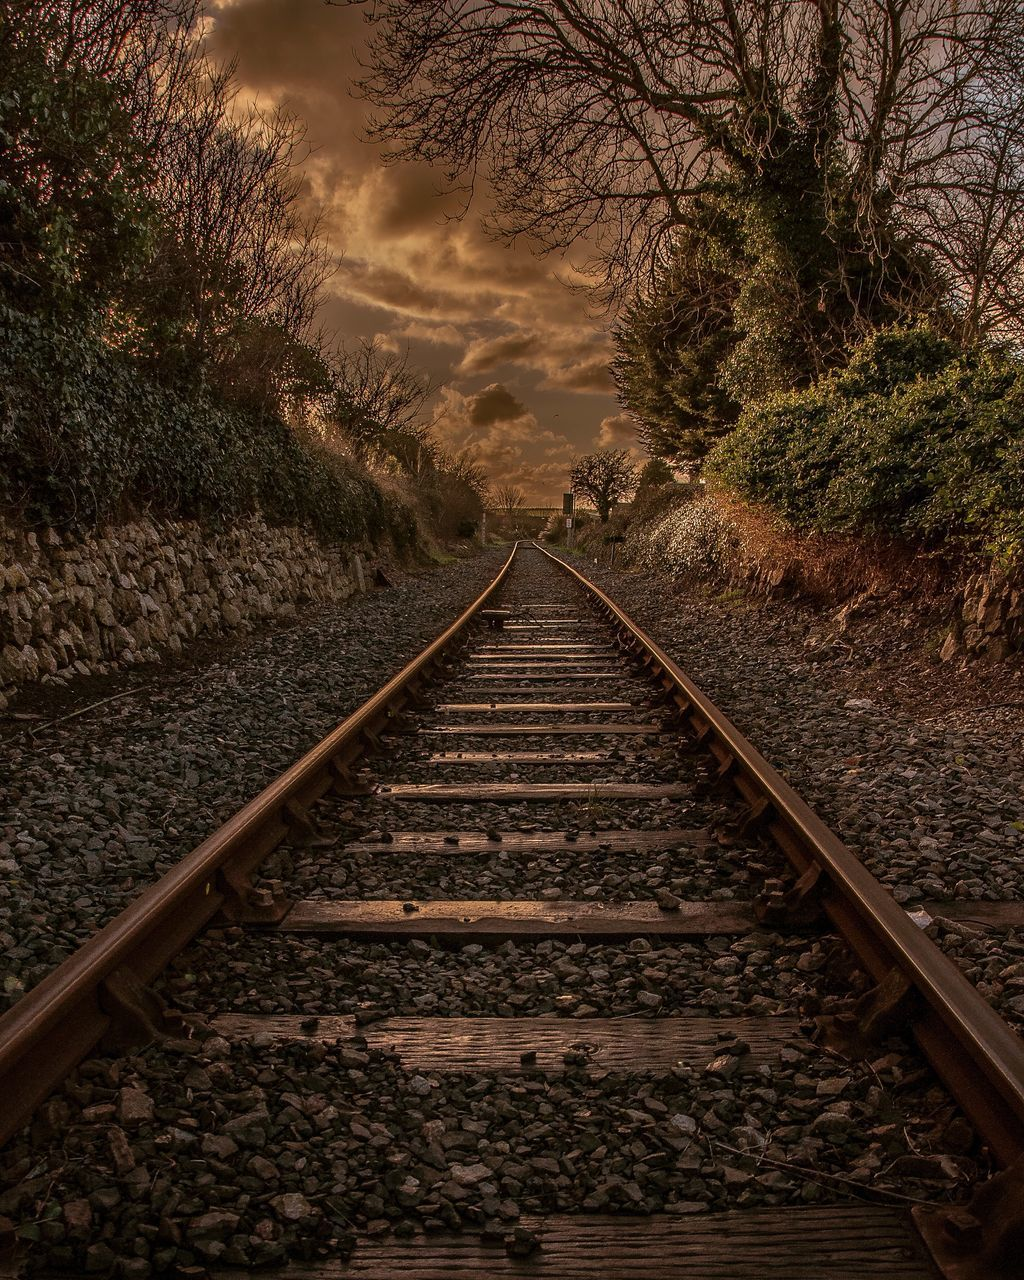 railroad track, rail transportation, transportation, diminishing perspective, the way forward, tree, railroad tie, no people, nature, railway track, straight, outdoors, tranquility, day, beauty in nature, scenics, sky